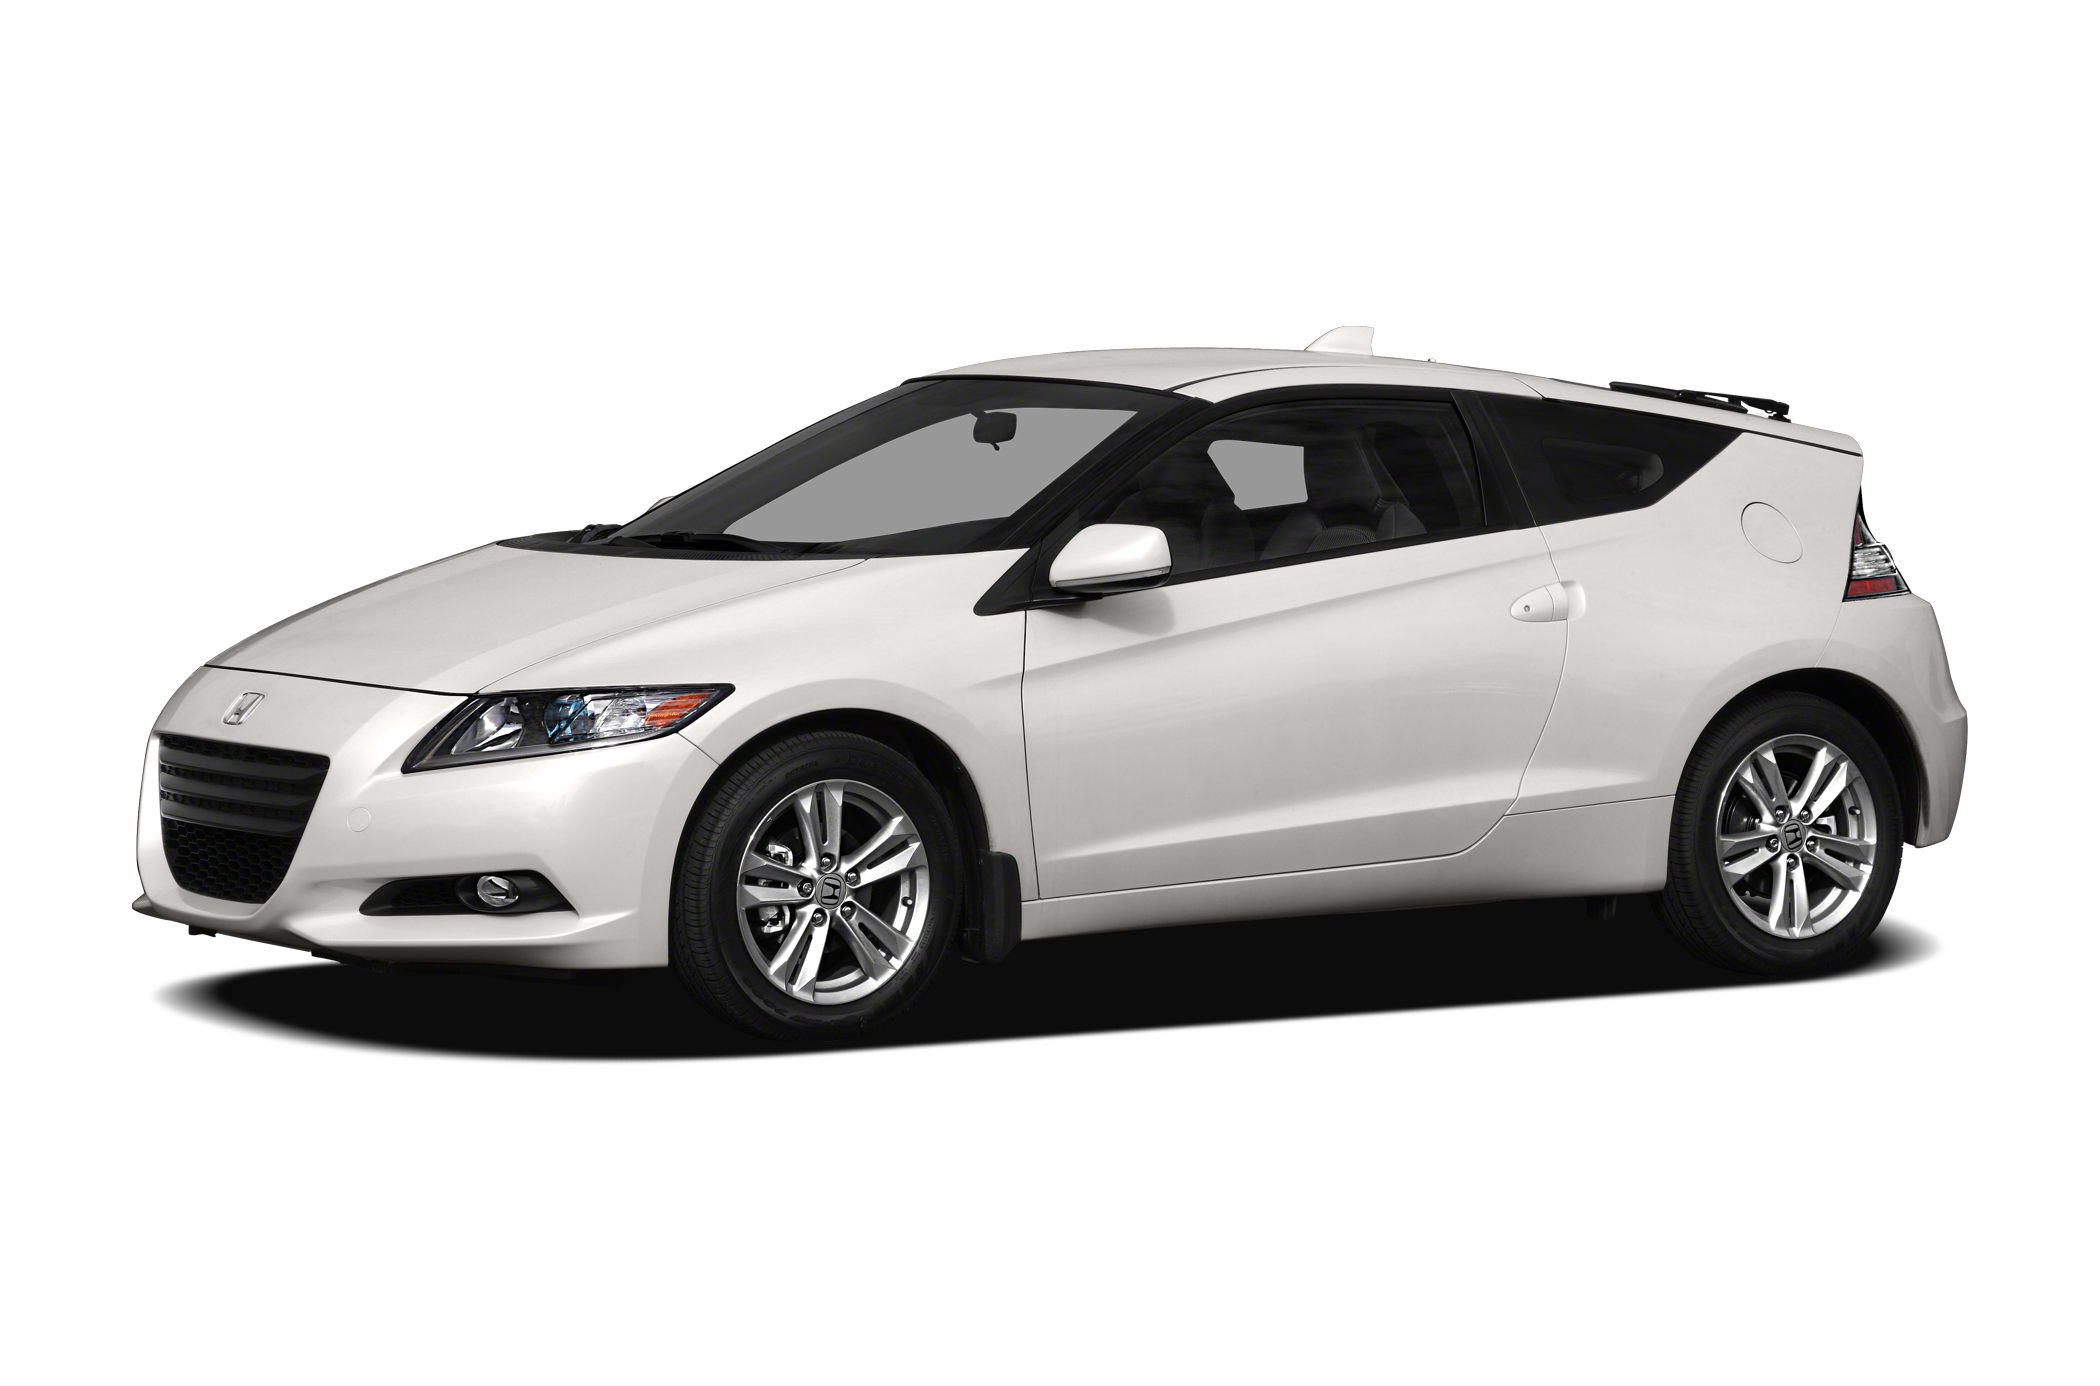 2012 Honda CR-Z Base Coupe for sale in Tifton for $14,995 with 20,417 miles.